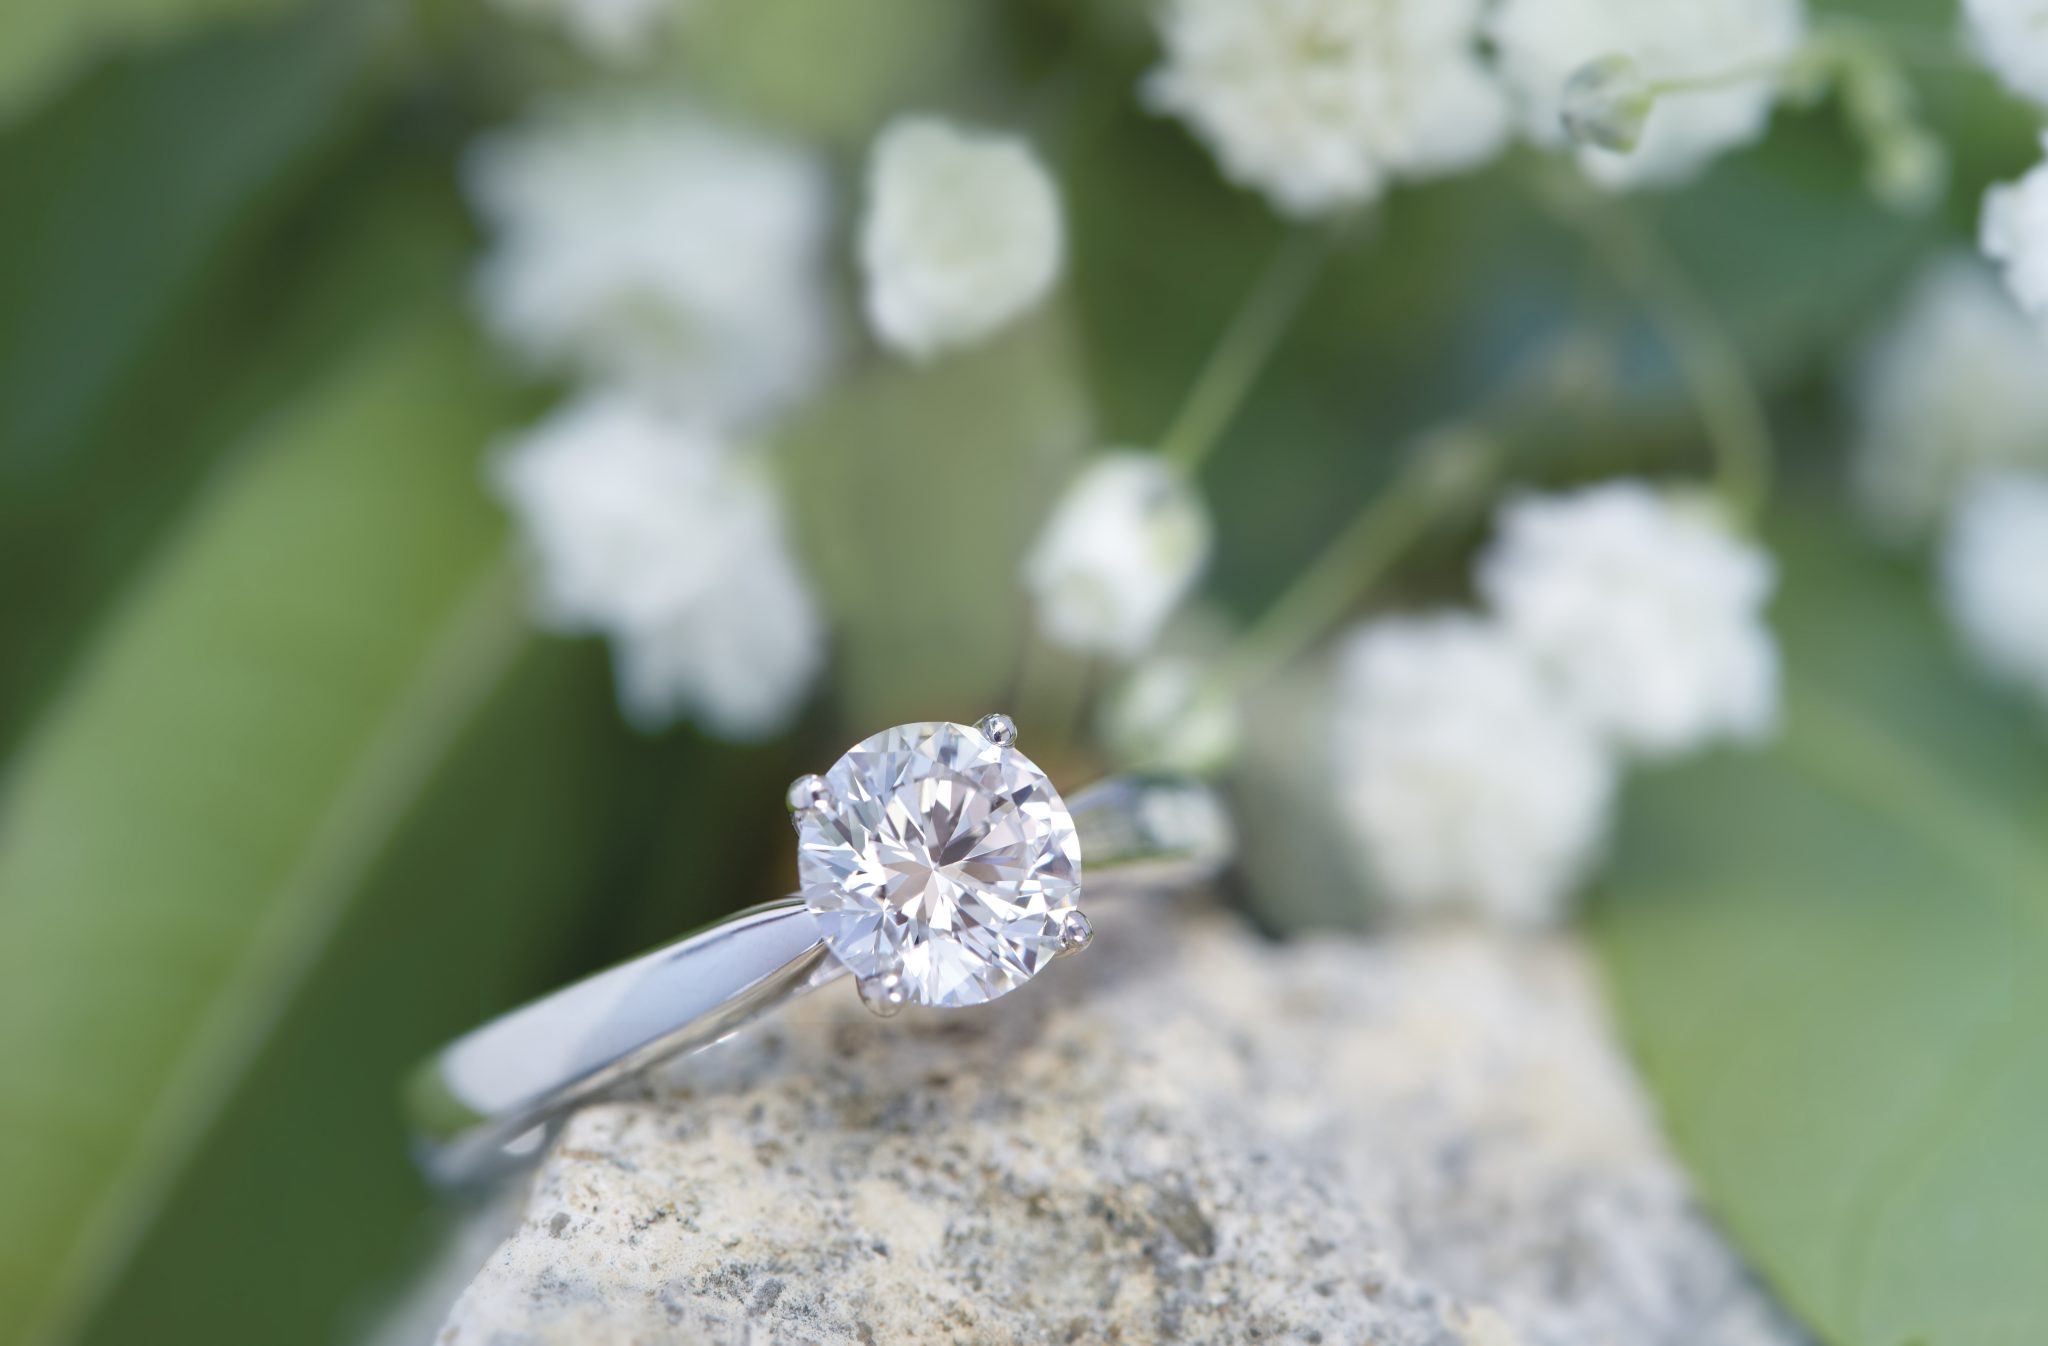 Jcpenney Launches Lab Grown Diamond Brand Grown With Love Jcpenney Company Blog